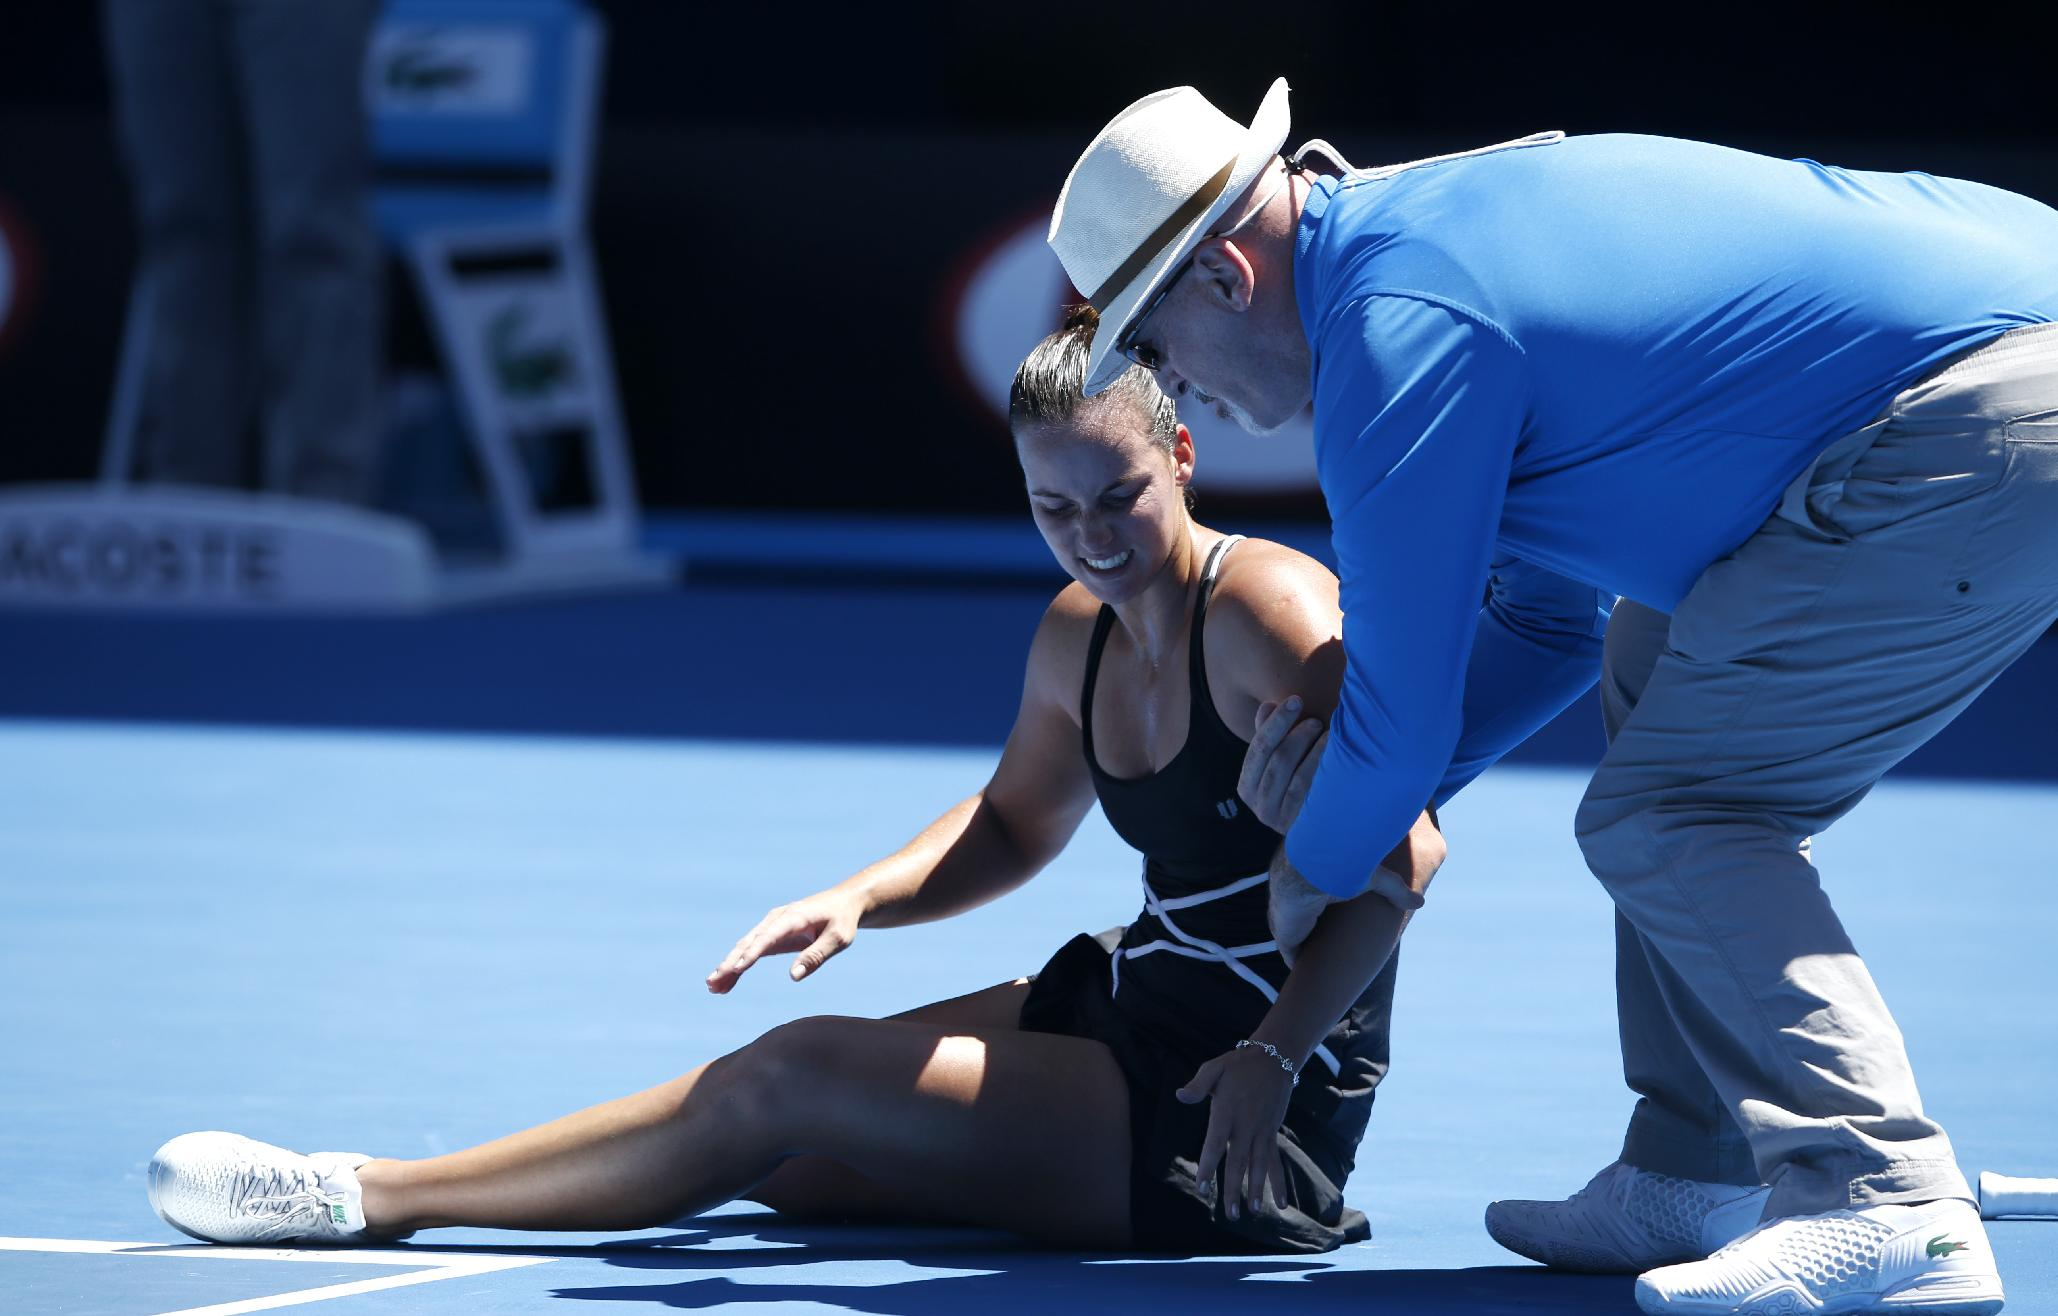 Jarmila Gajdosova of Australia is assisted by  linesman after falling over during her first round match against Angelique Kerber of Germany at the Australian Open tennis championship in Melbourne, Australia, Monday, Jan. 13, 2014